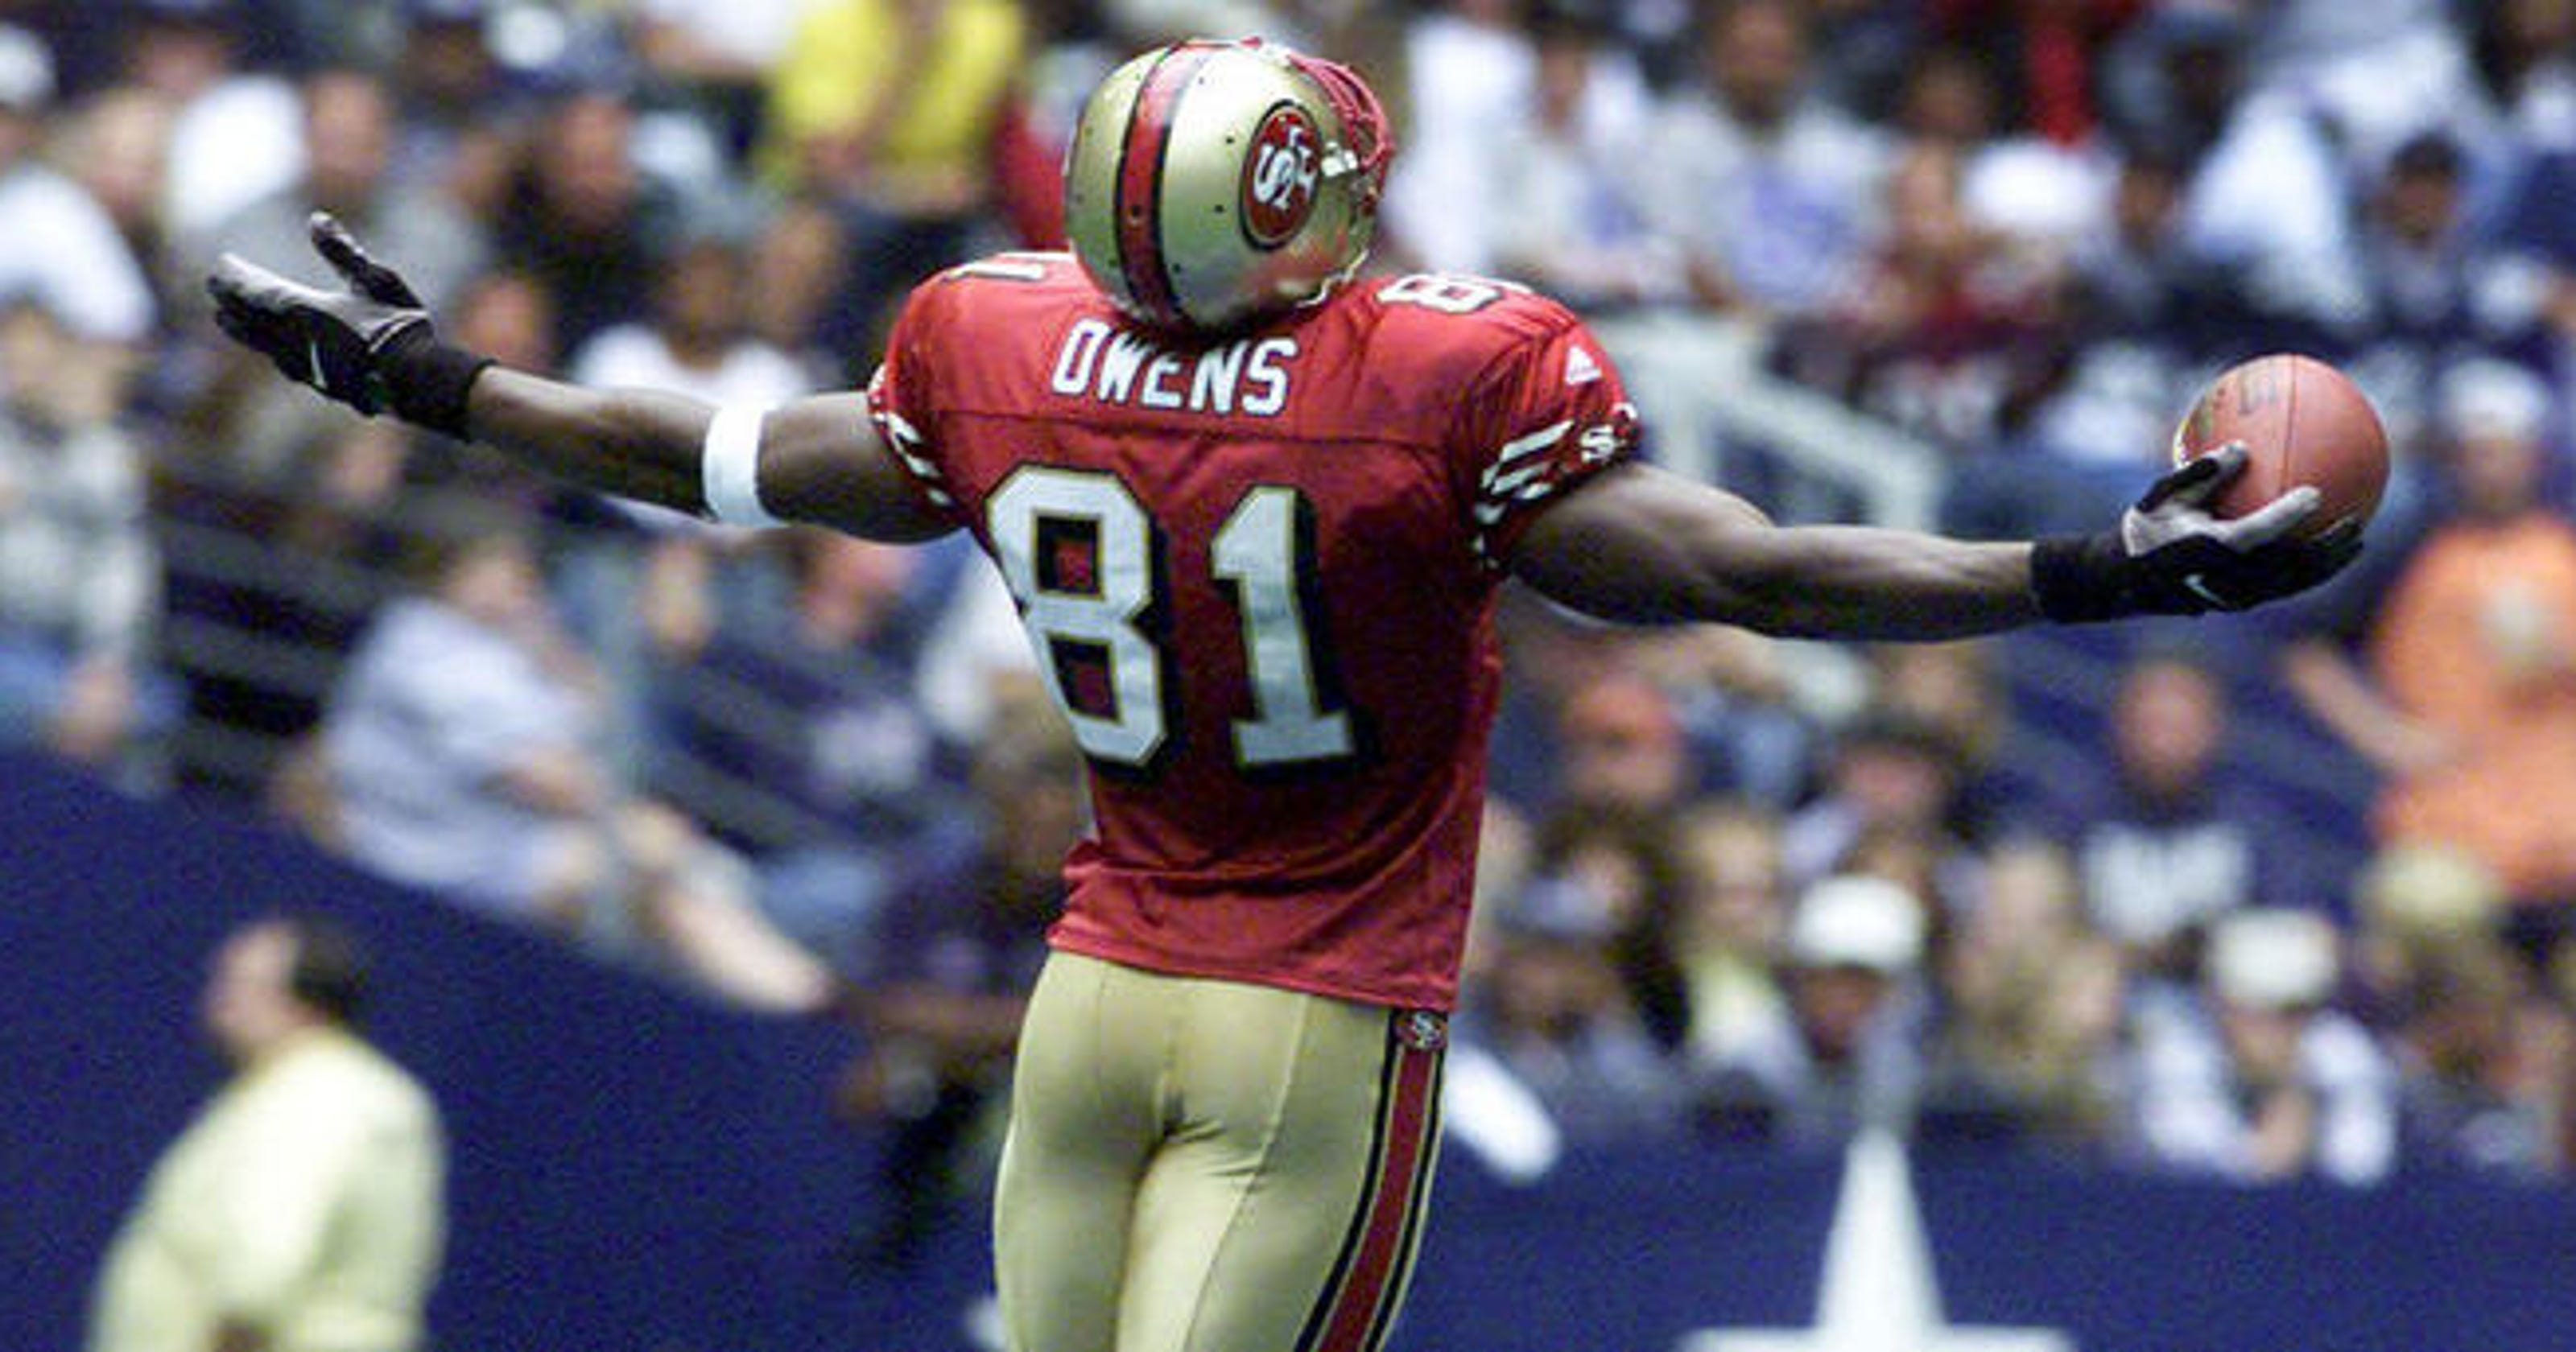 afe1d4a9d41 Rankin: Terrell Owens will miss 'golden' Pro Football HOF moment